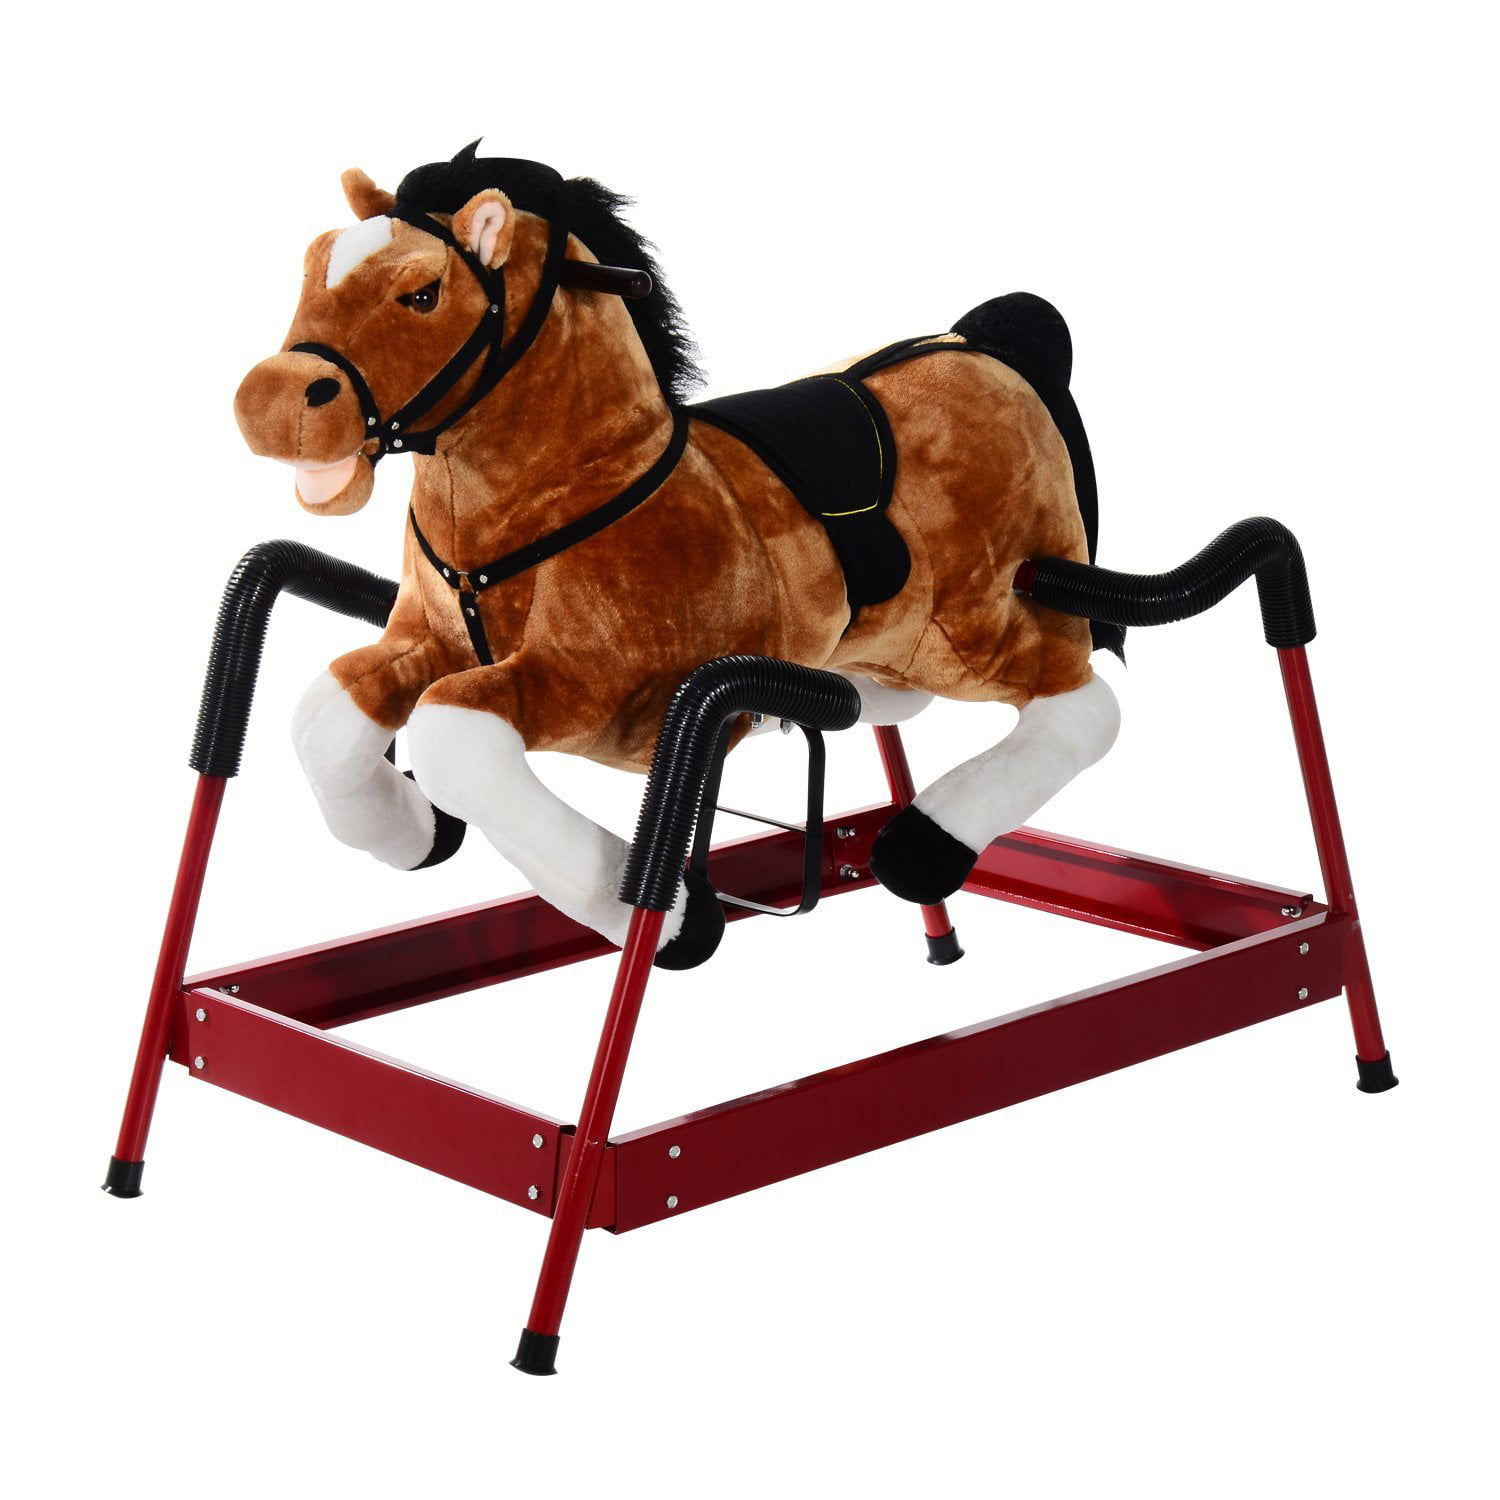 Qaba Kids Plush Spring Rocking Horse by Qaba